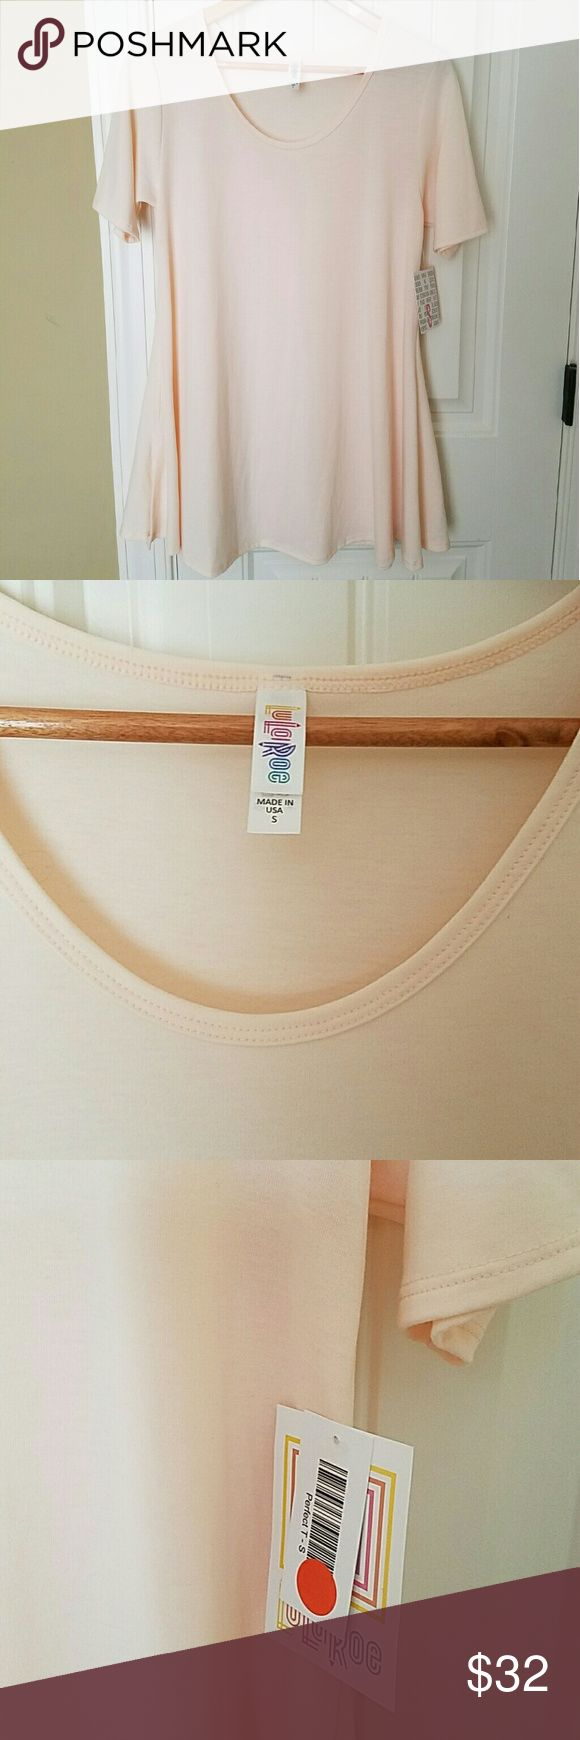 NWT LuLaRoe Perfect T Women's small, new with tags Perfect T. Color is Pastel Peach. LuLaRoe Tops